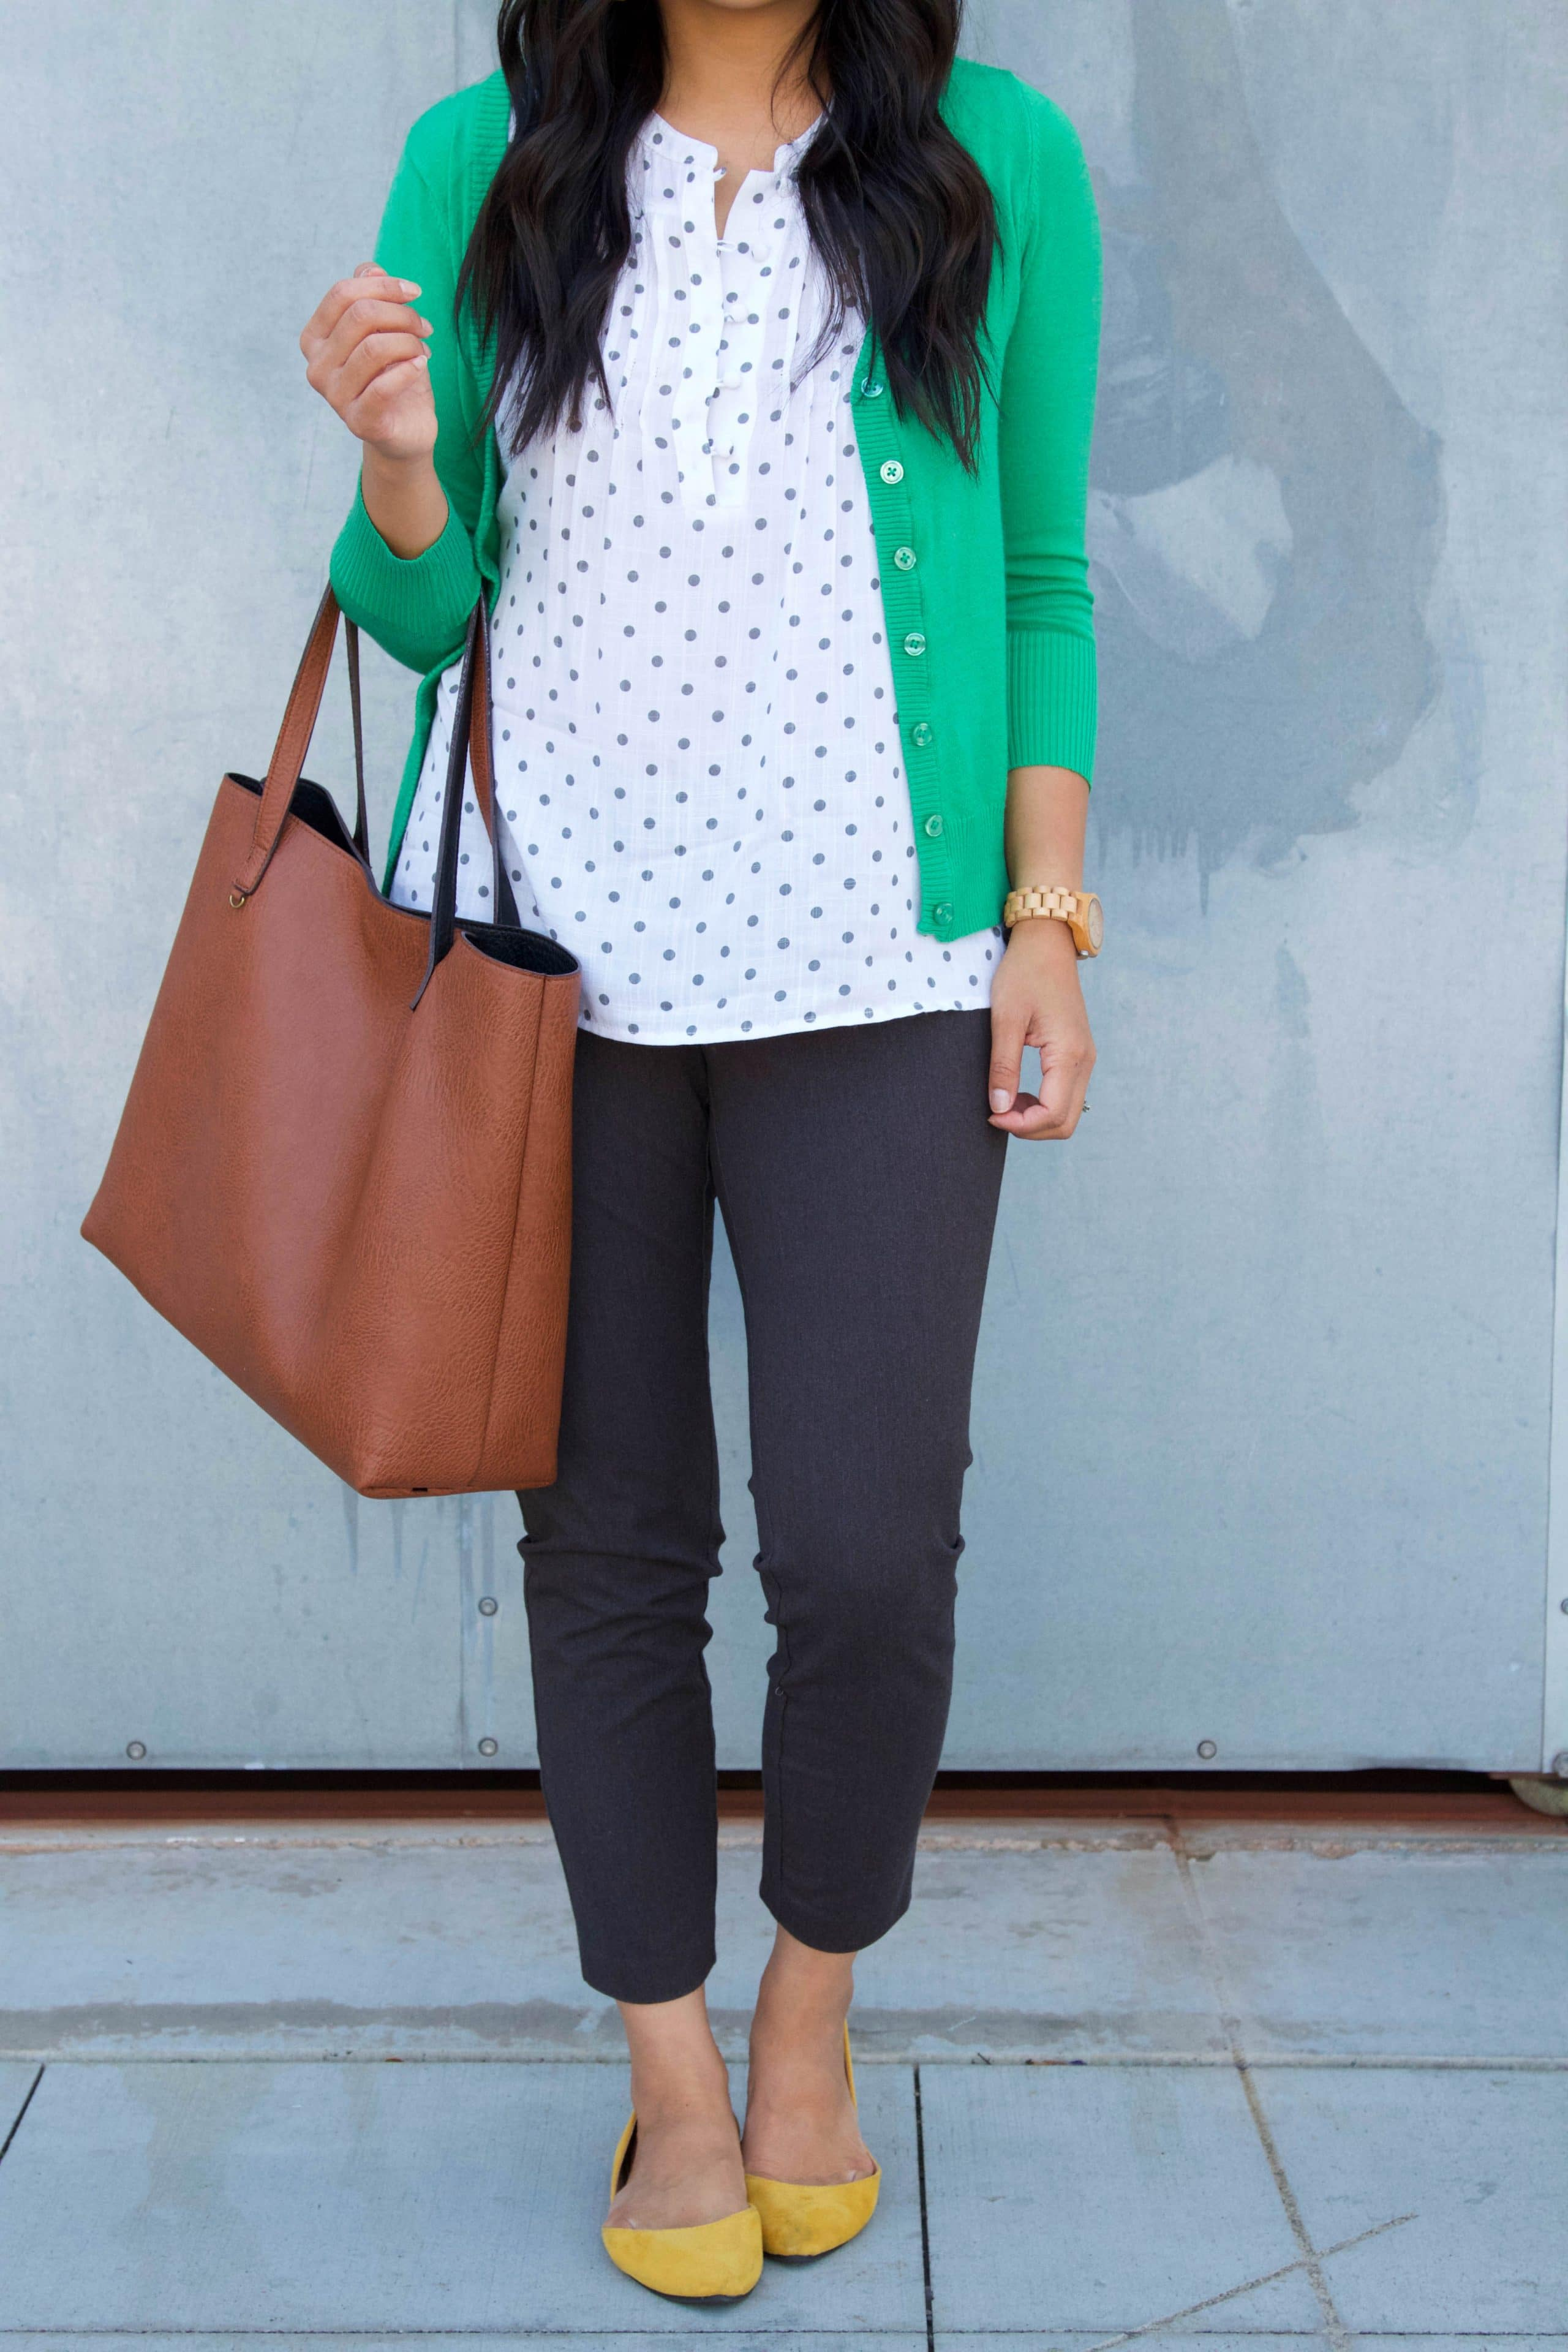 Green Cardigan + Blouse + Grey Chinos + Yellow flats + Cognac Bag